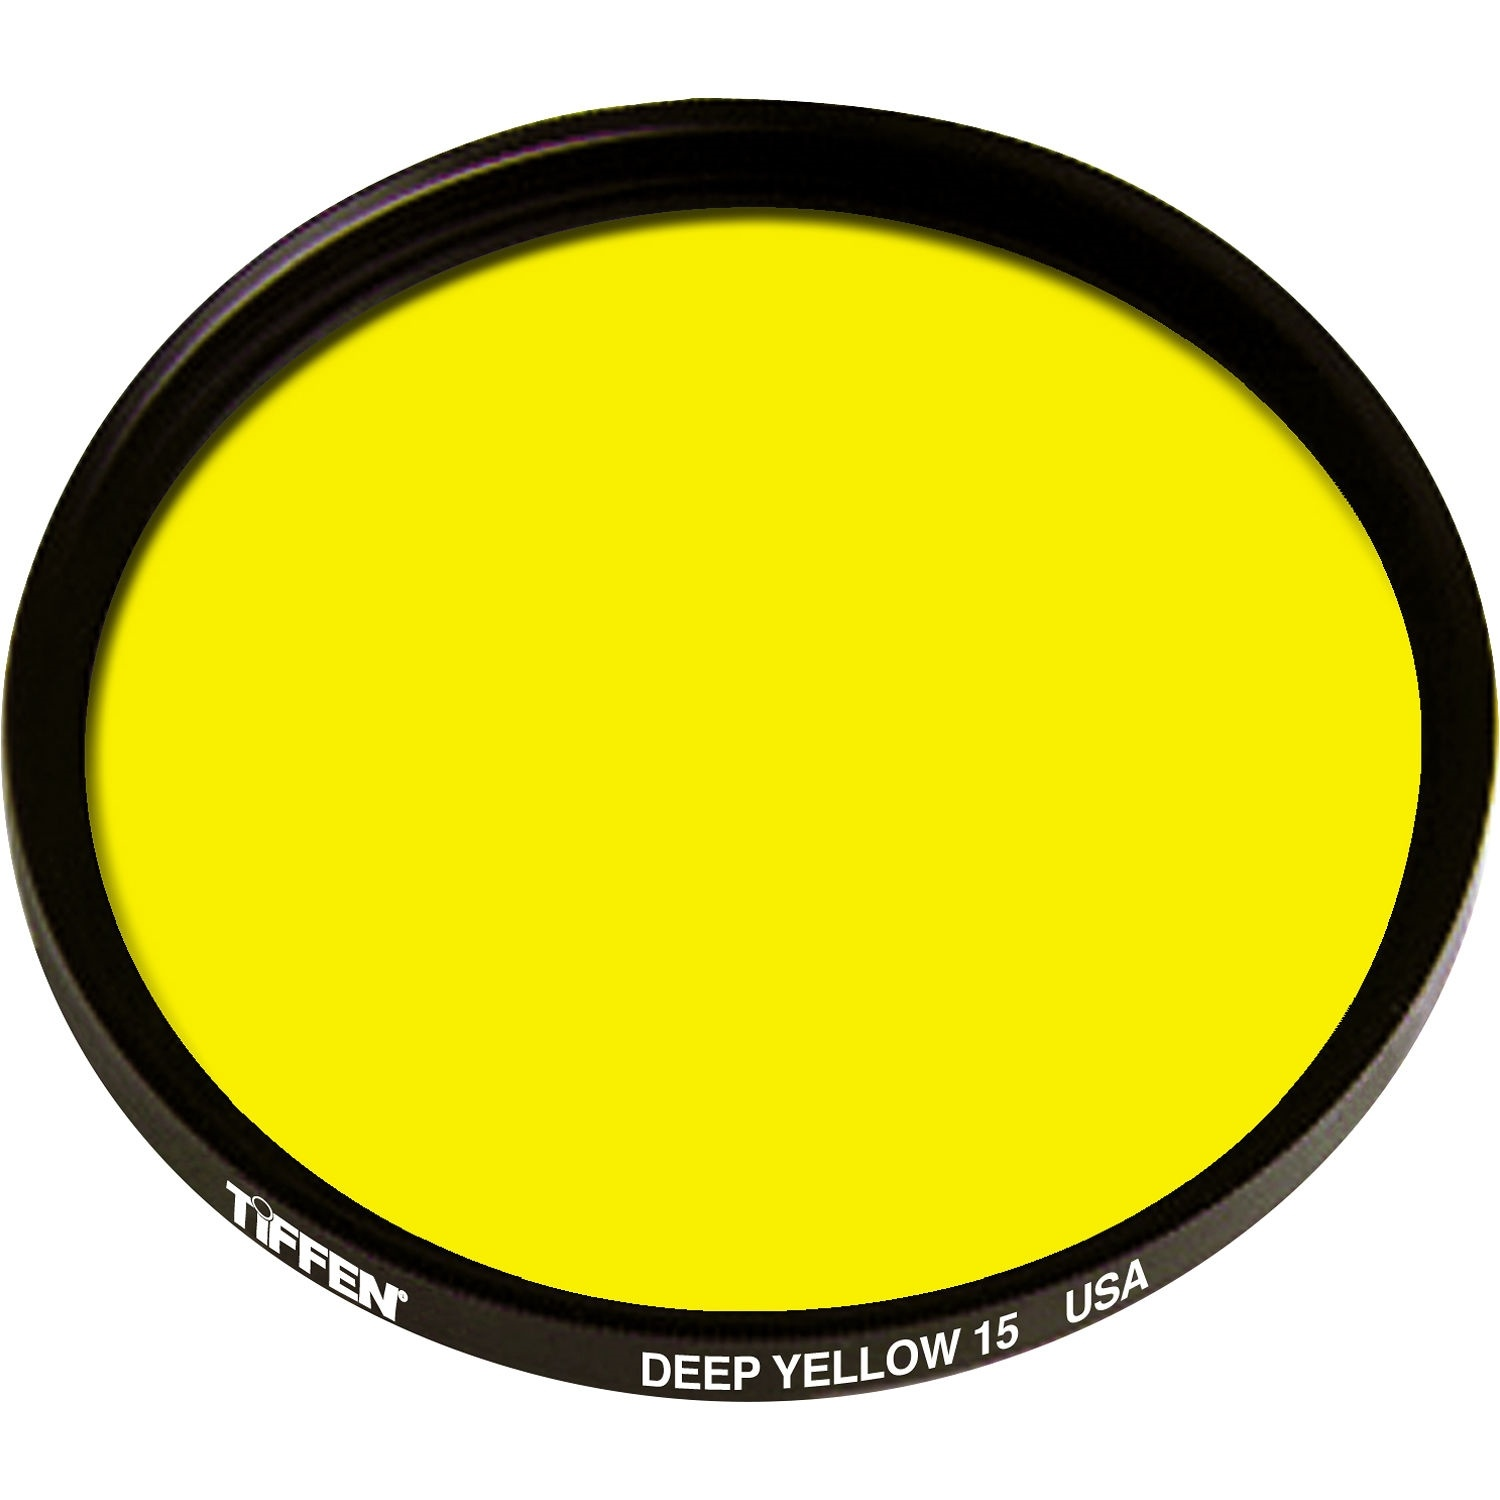 Tiffen 77mm Deep Yellow 15 Glass Filter for Black & White Film